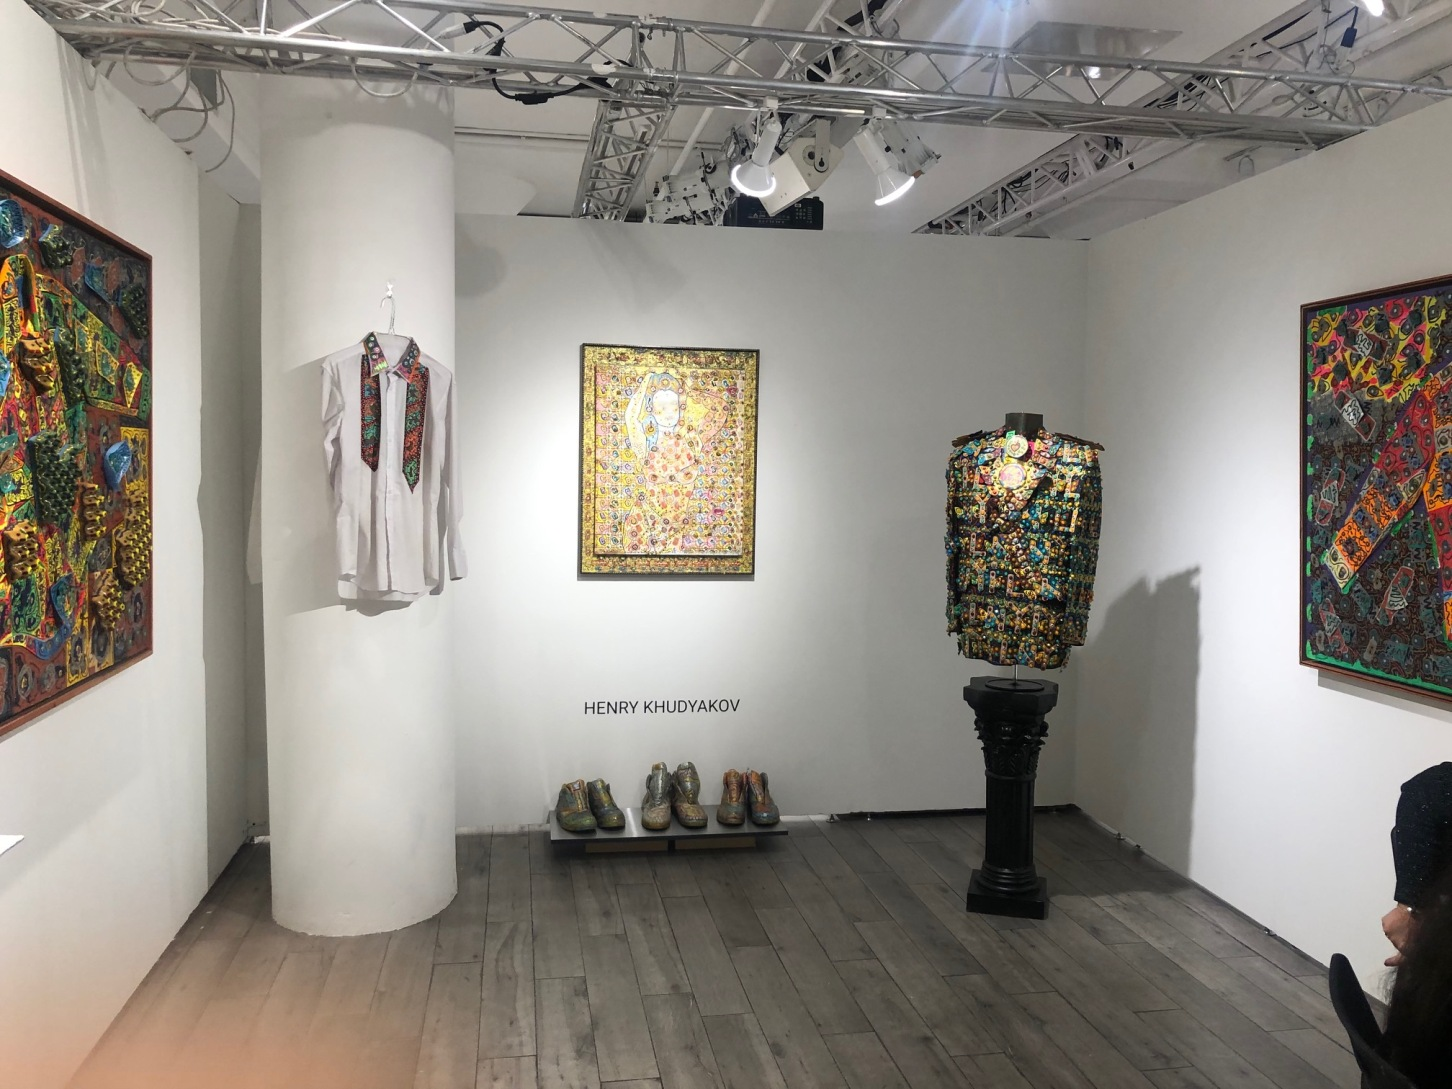 Henry Khudyakov's Art Project at VOLTA New York 2020